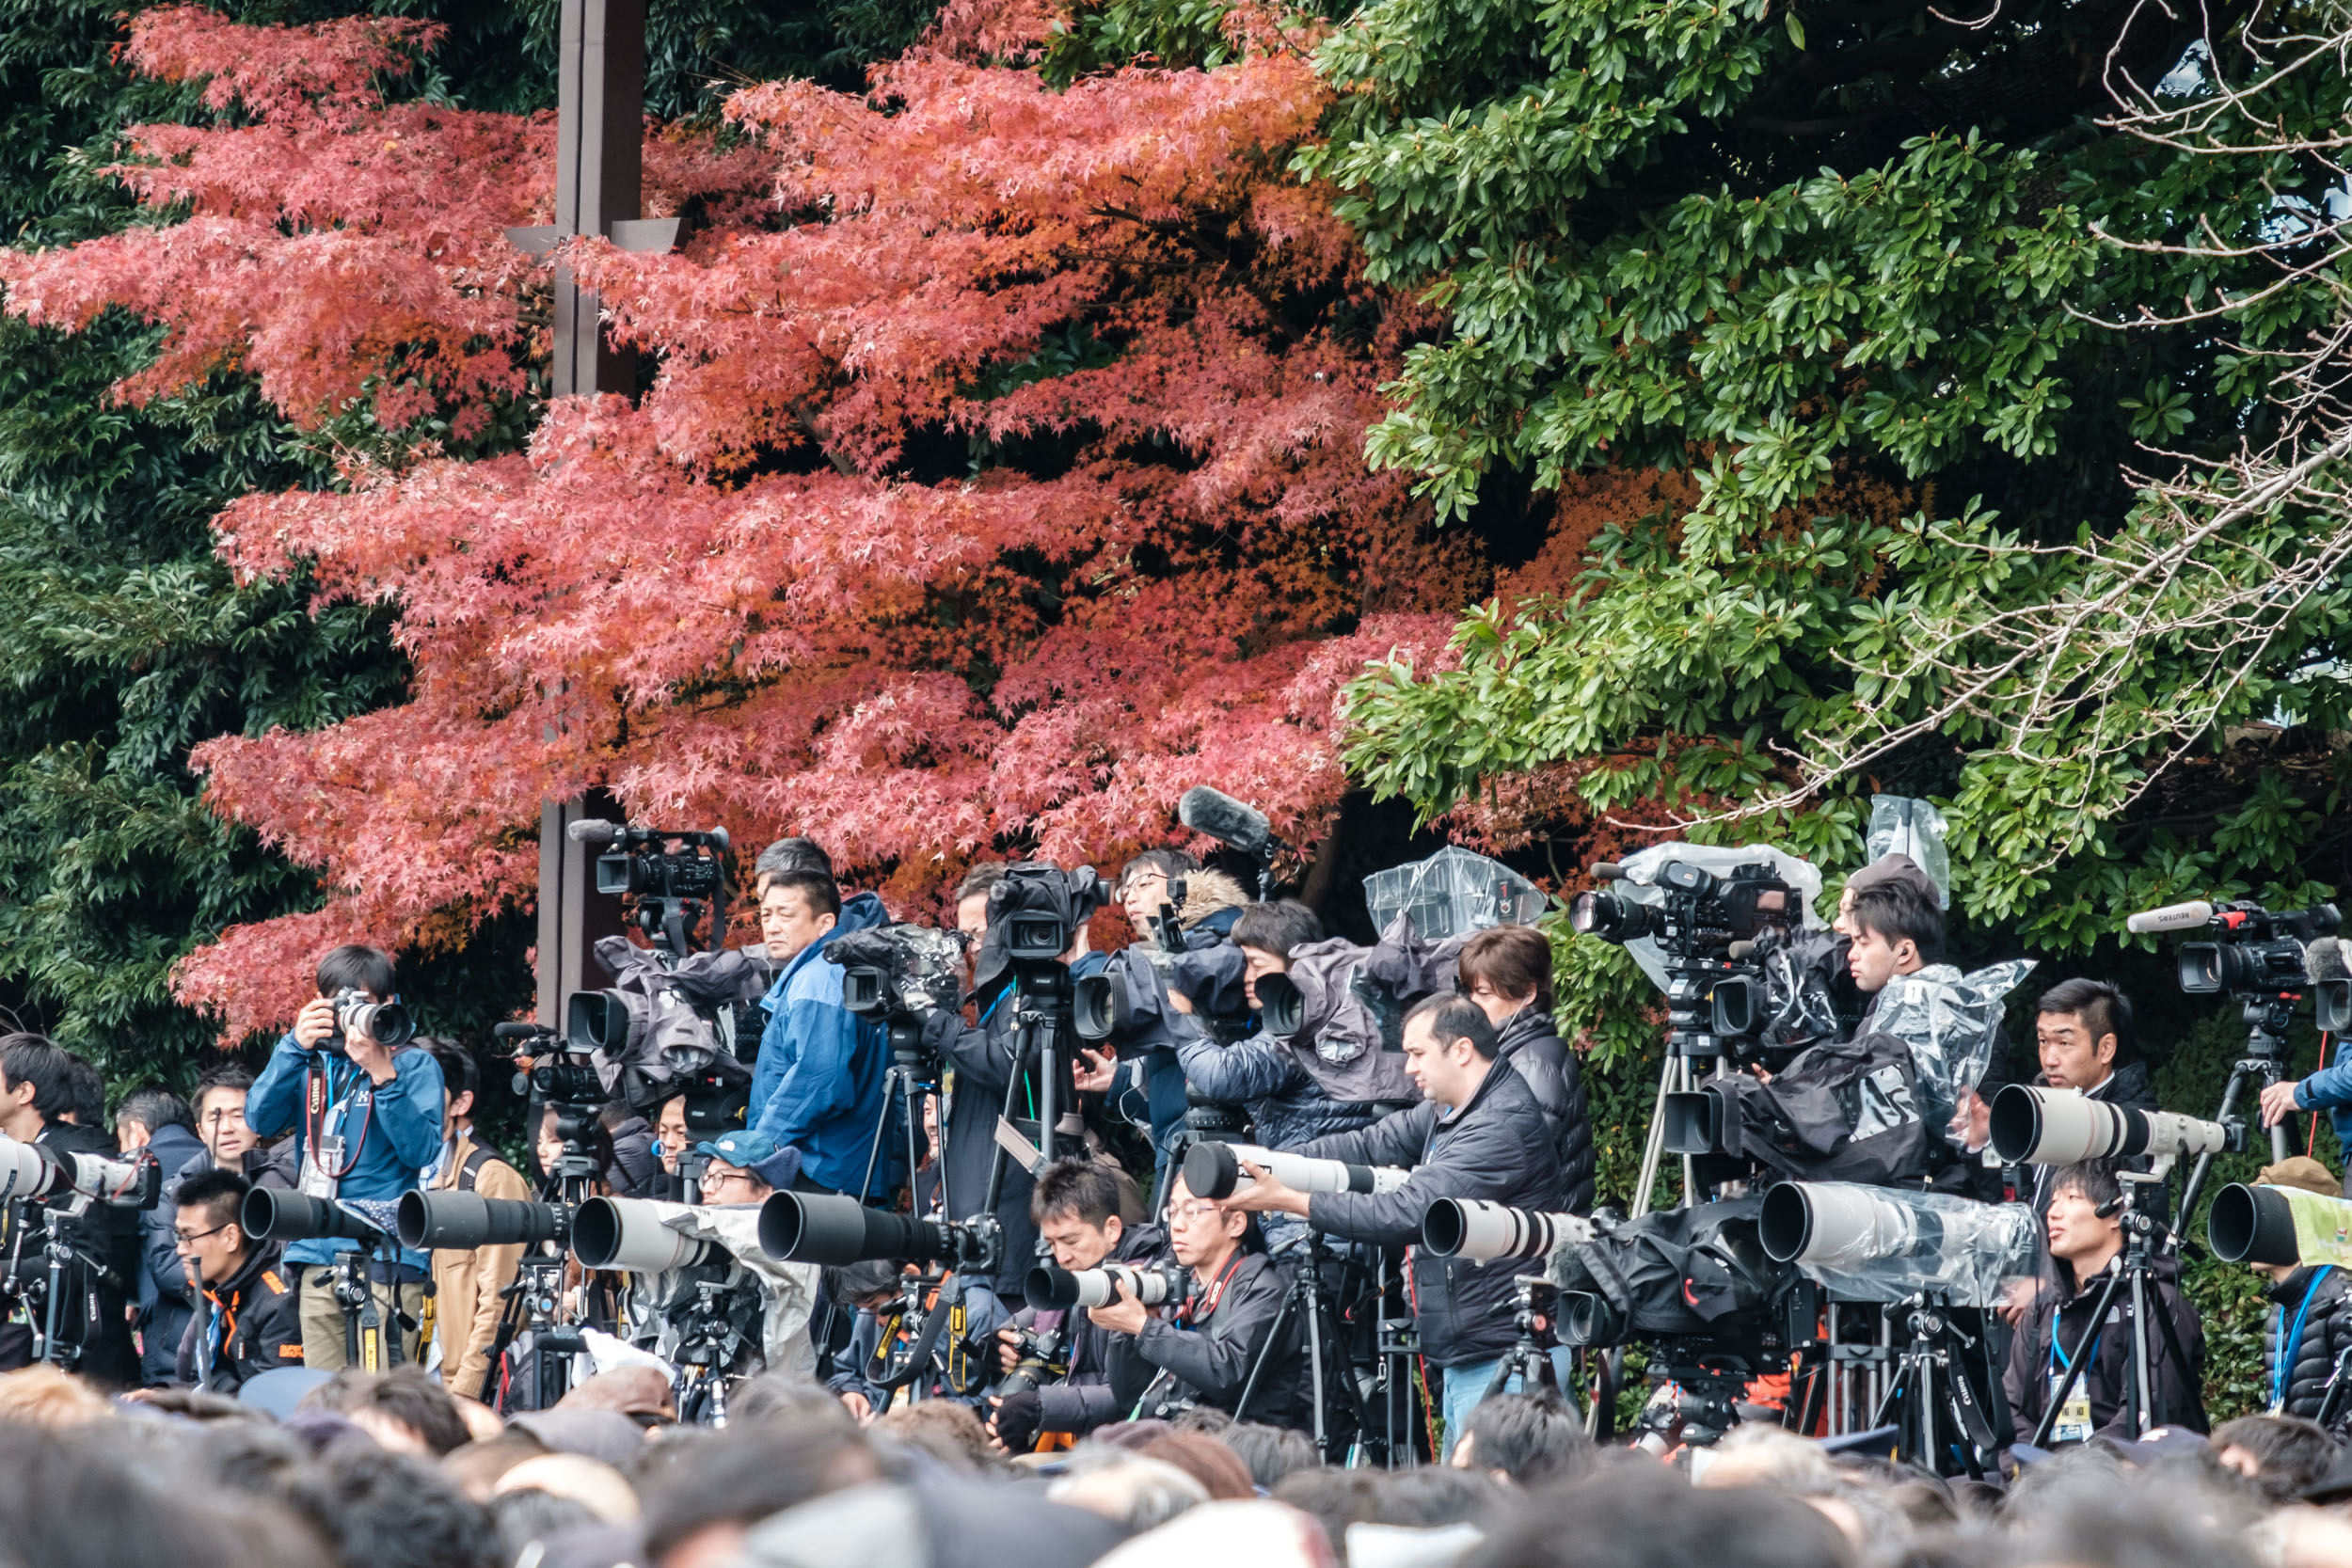 The media attention was intense, as always.